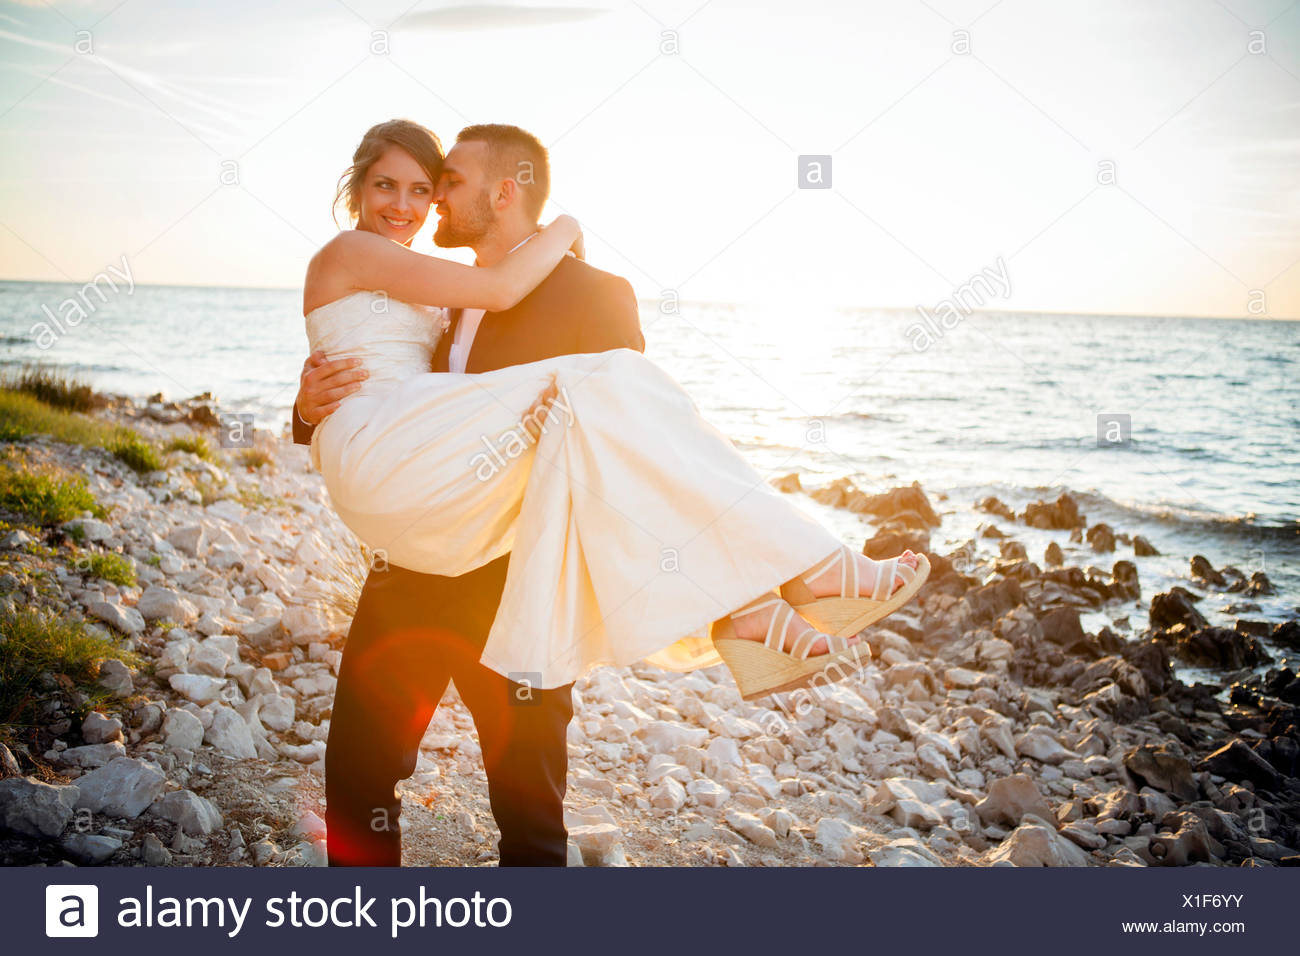 Groom carrying bride on pebble beach at sunset - Stock Image